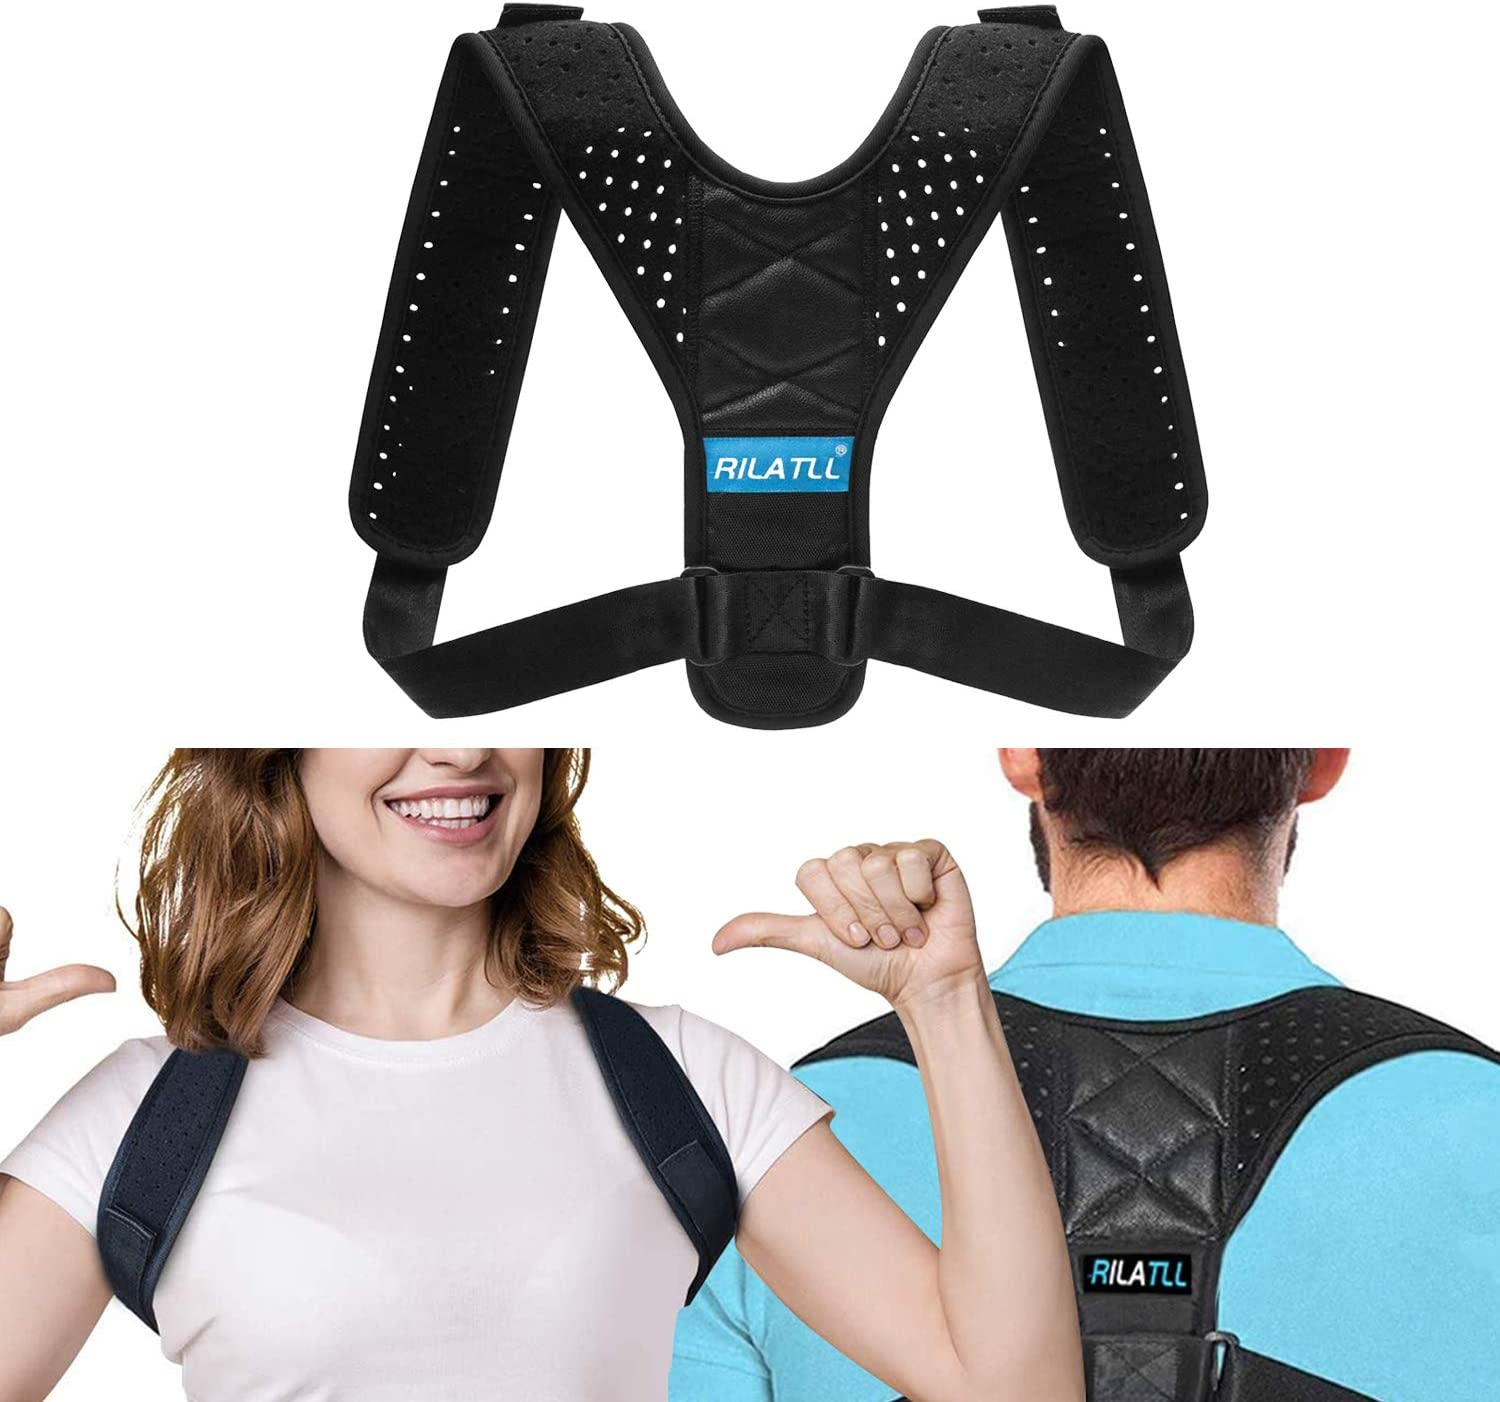 Posture Corrector Upper Back Posture Corrector for Men//Women Breathable and Durable Neoprene L Back Brace for Lower Back Pain Back Braces for Posture Correction Comfortable Wear